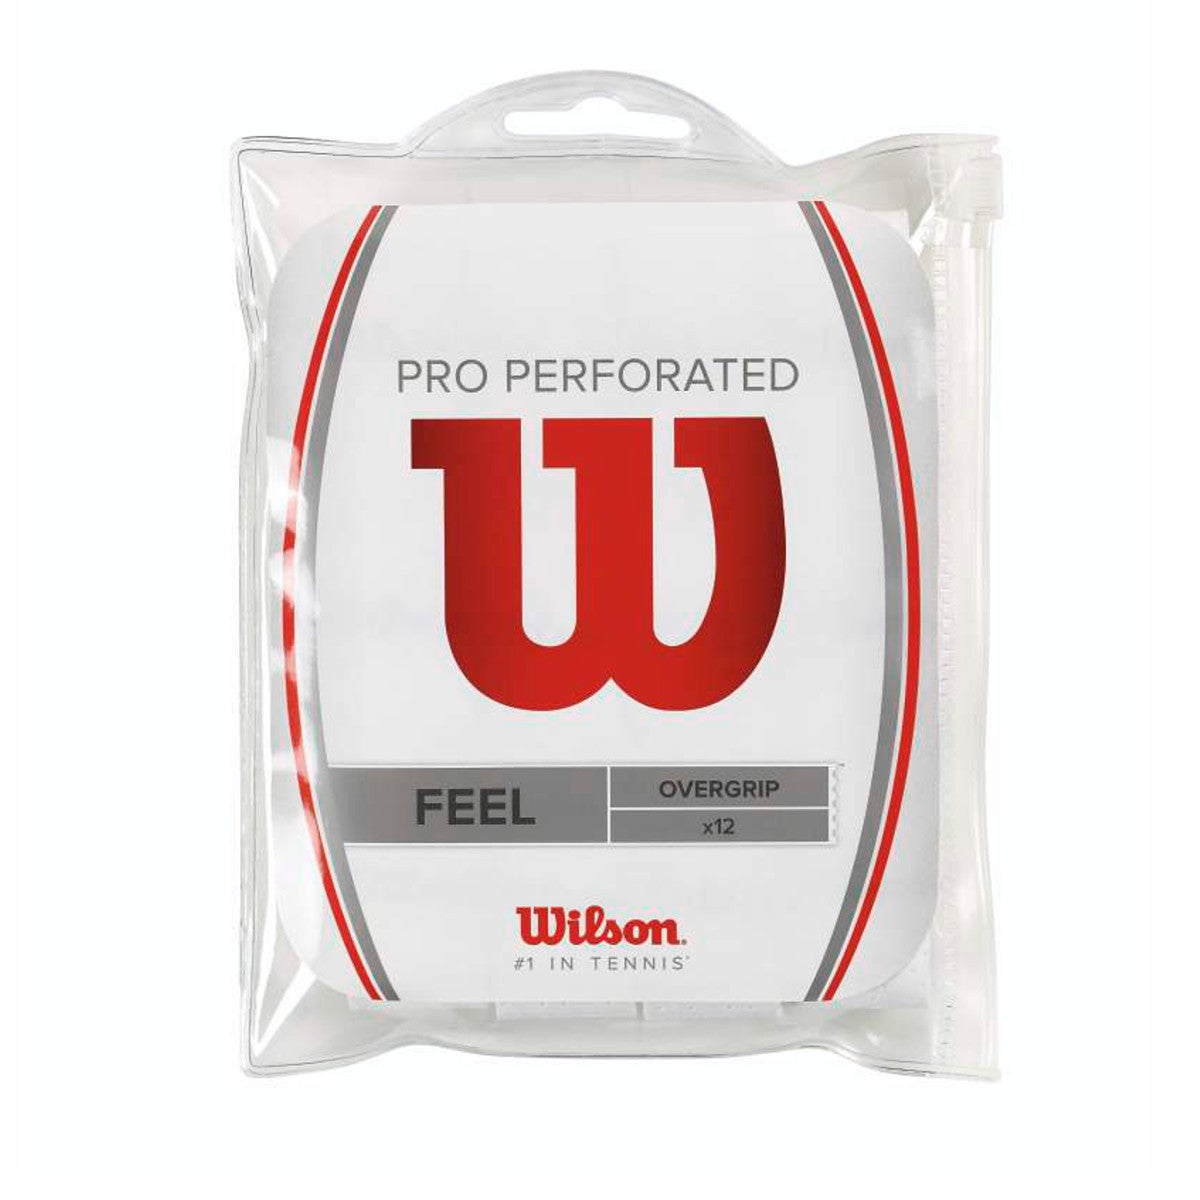 PRO OVERGRIP PERFORATED - WHITE, 12 PACK